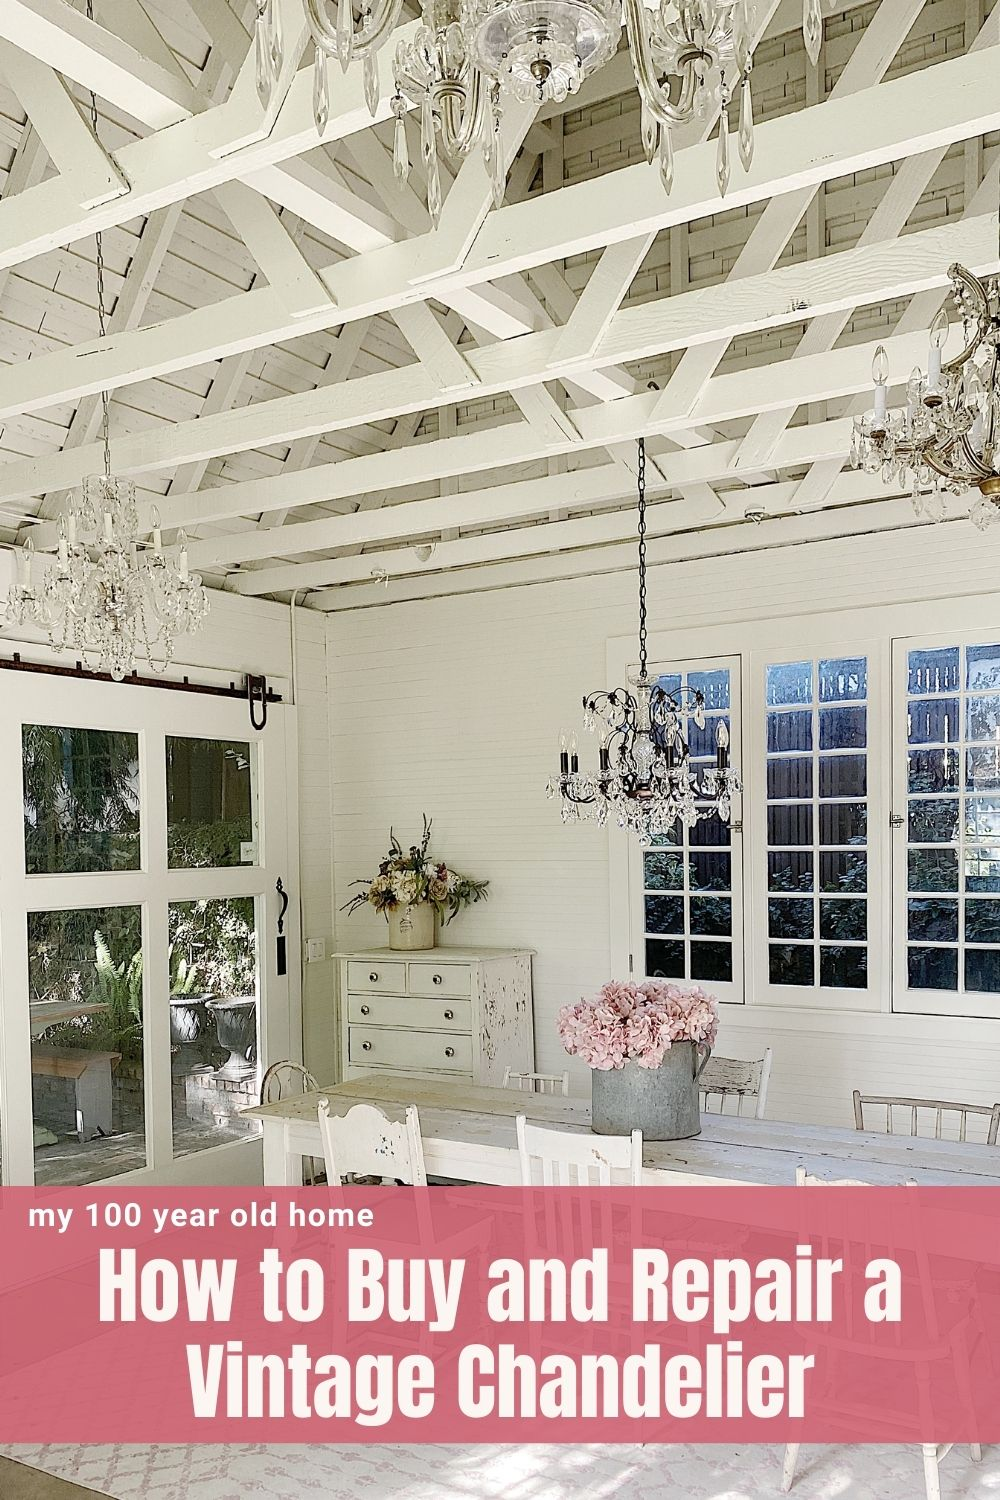 I found five vintage chandeliers for the Carriage House. Today I am sharing tips to buying and repairing a vintage chandelier.